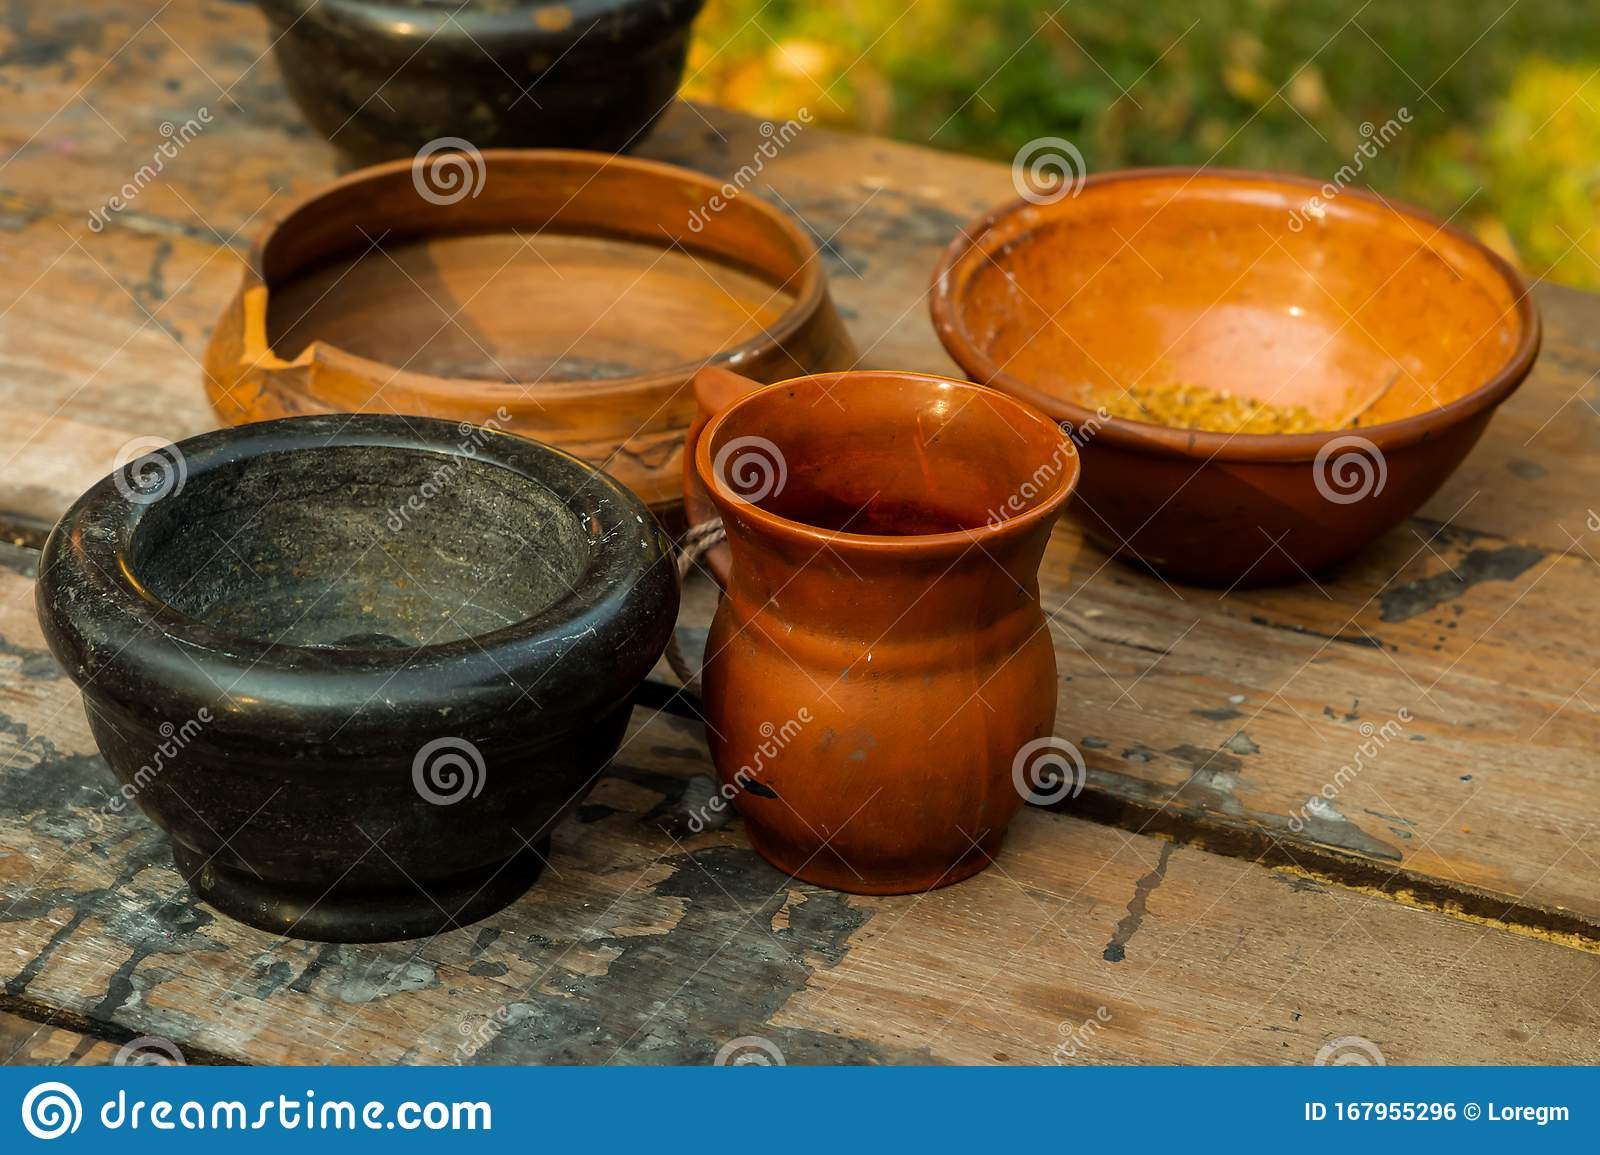 Ceramic Dishes Set Brown Deep Plate And A Jug With A Mug Stand Next To The Mortar A Rustic Kitchen Pattern Stands On A Wooden Stock Photo Image Of Bowl Pottery